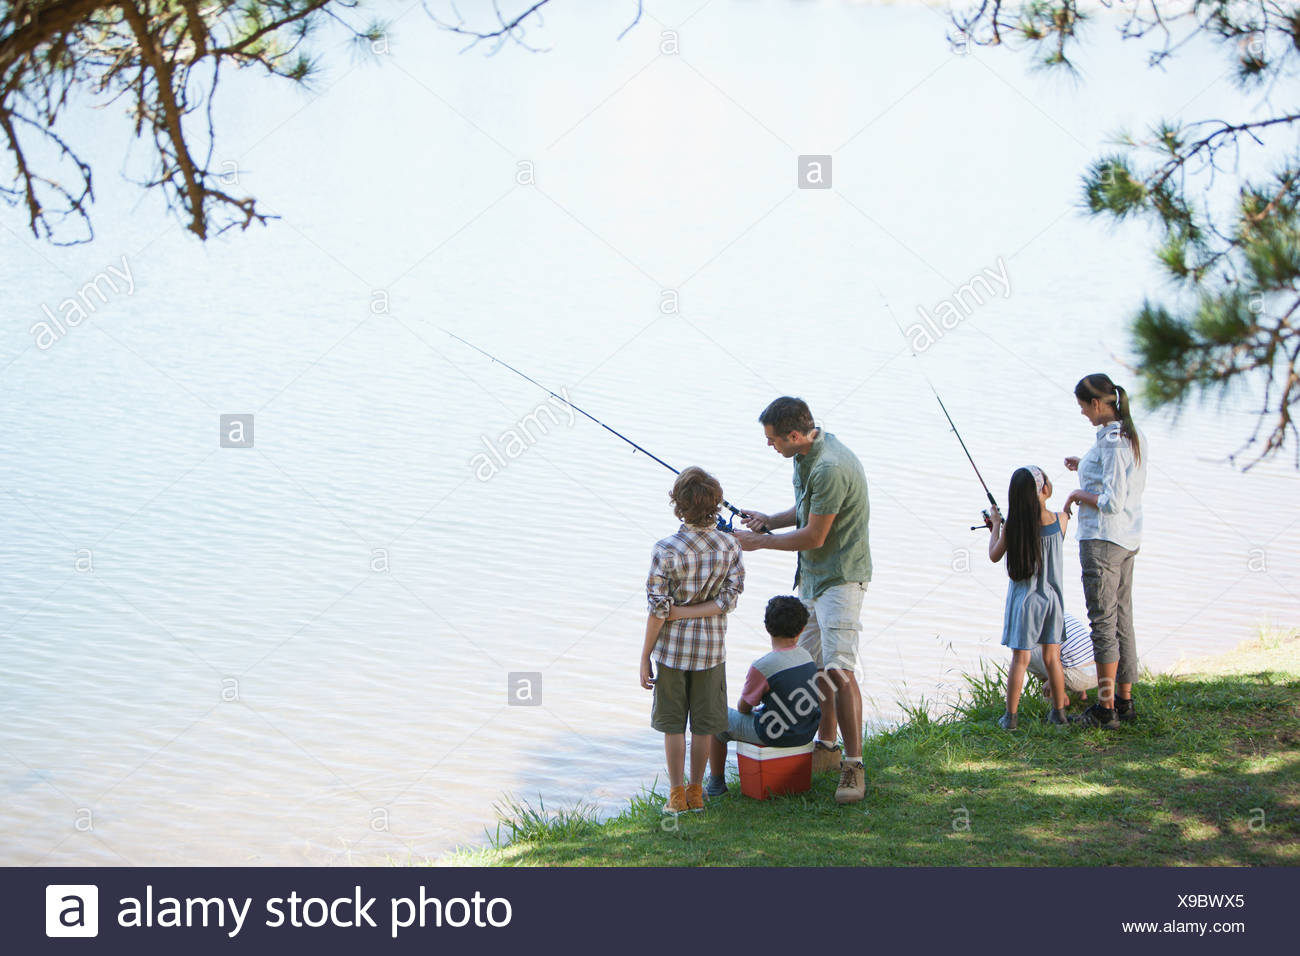 Family fishing lakeside - Stock Image